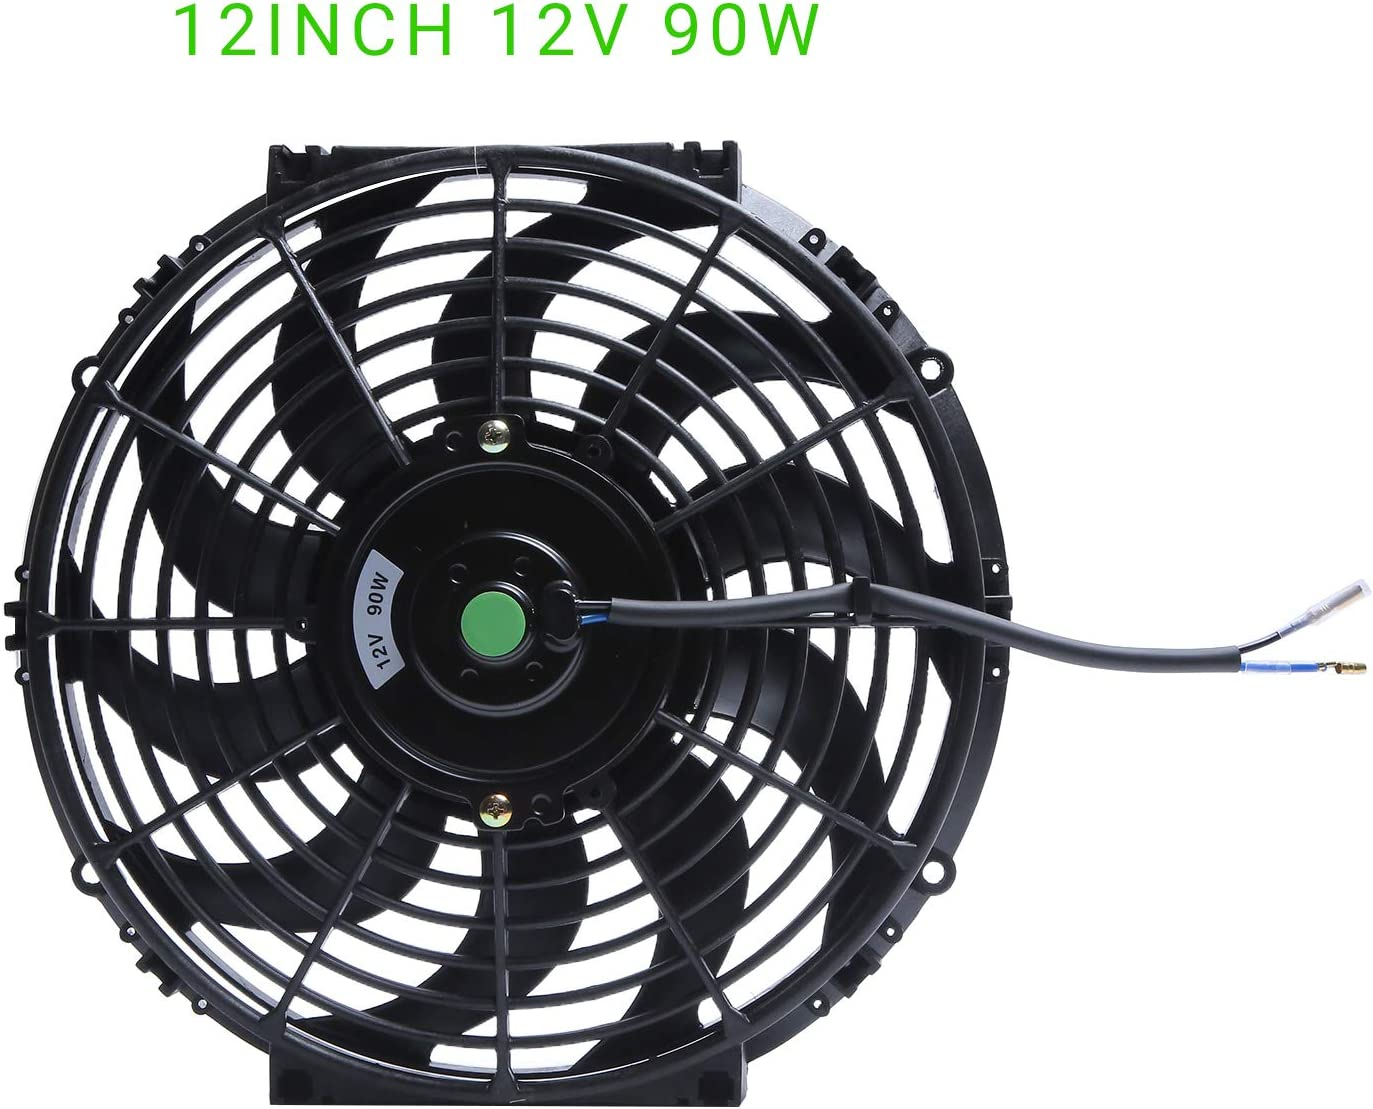 Engine Radiator Cooling Fan 12 Inch Curved Blade Ultra Thin Universal High Performance 12V 90W Motor,Radiator Fan With Fan Mounting Kit(Puller and Pusher Design)